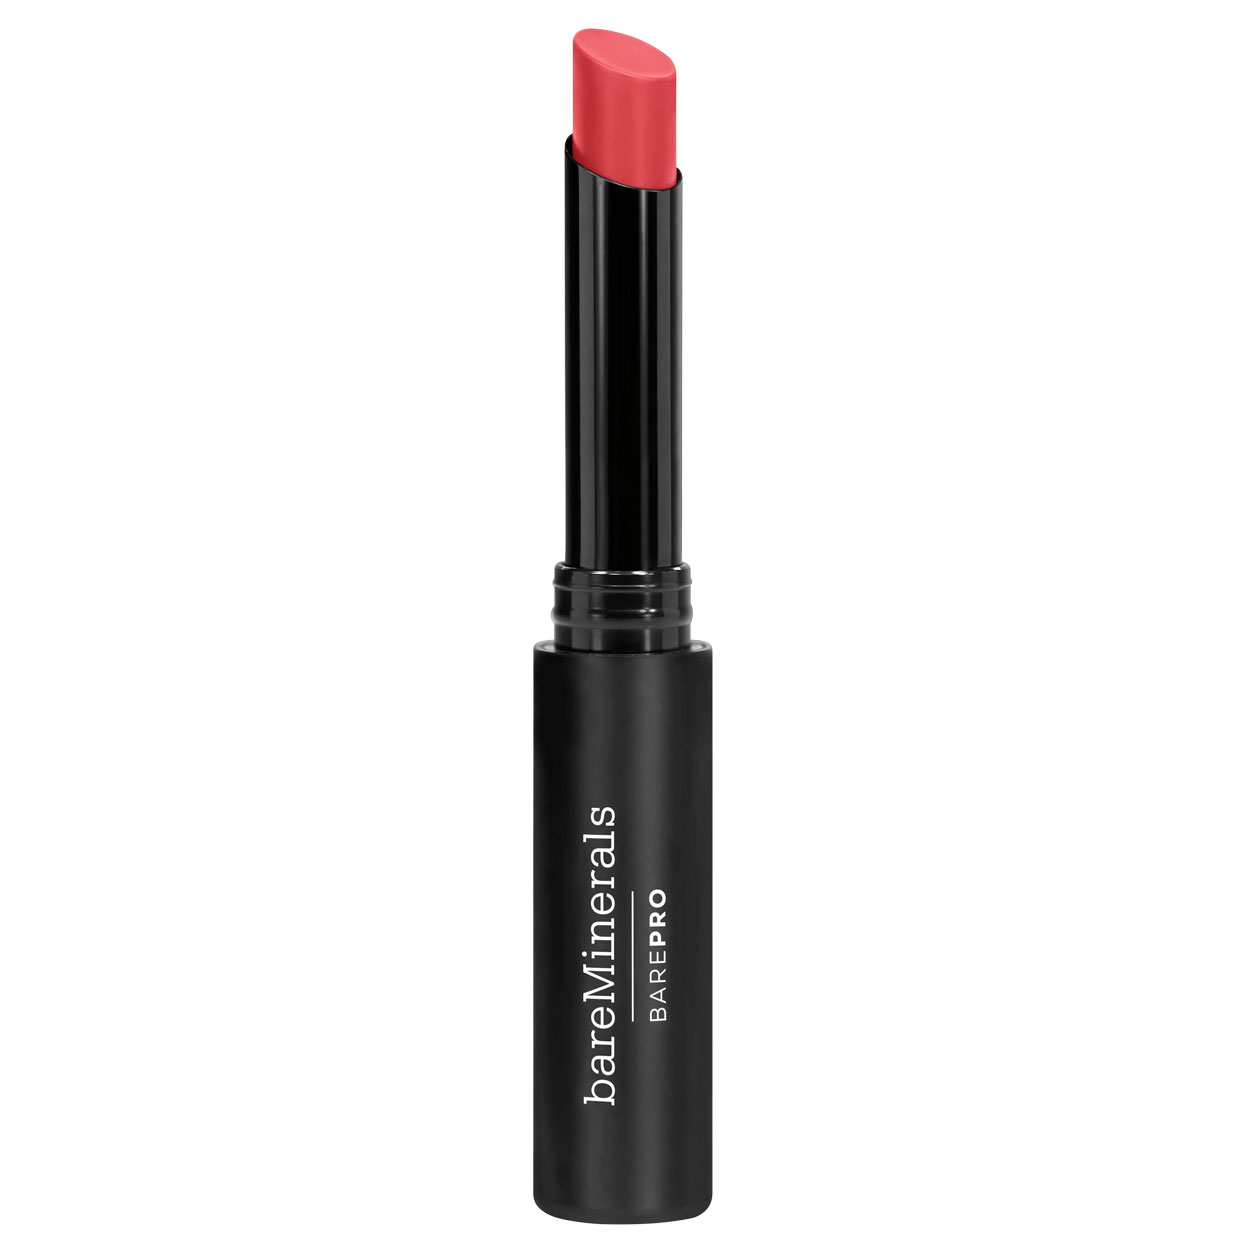 A stay-put lipcolor for a night out